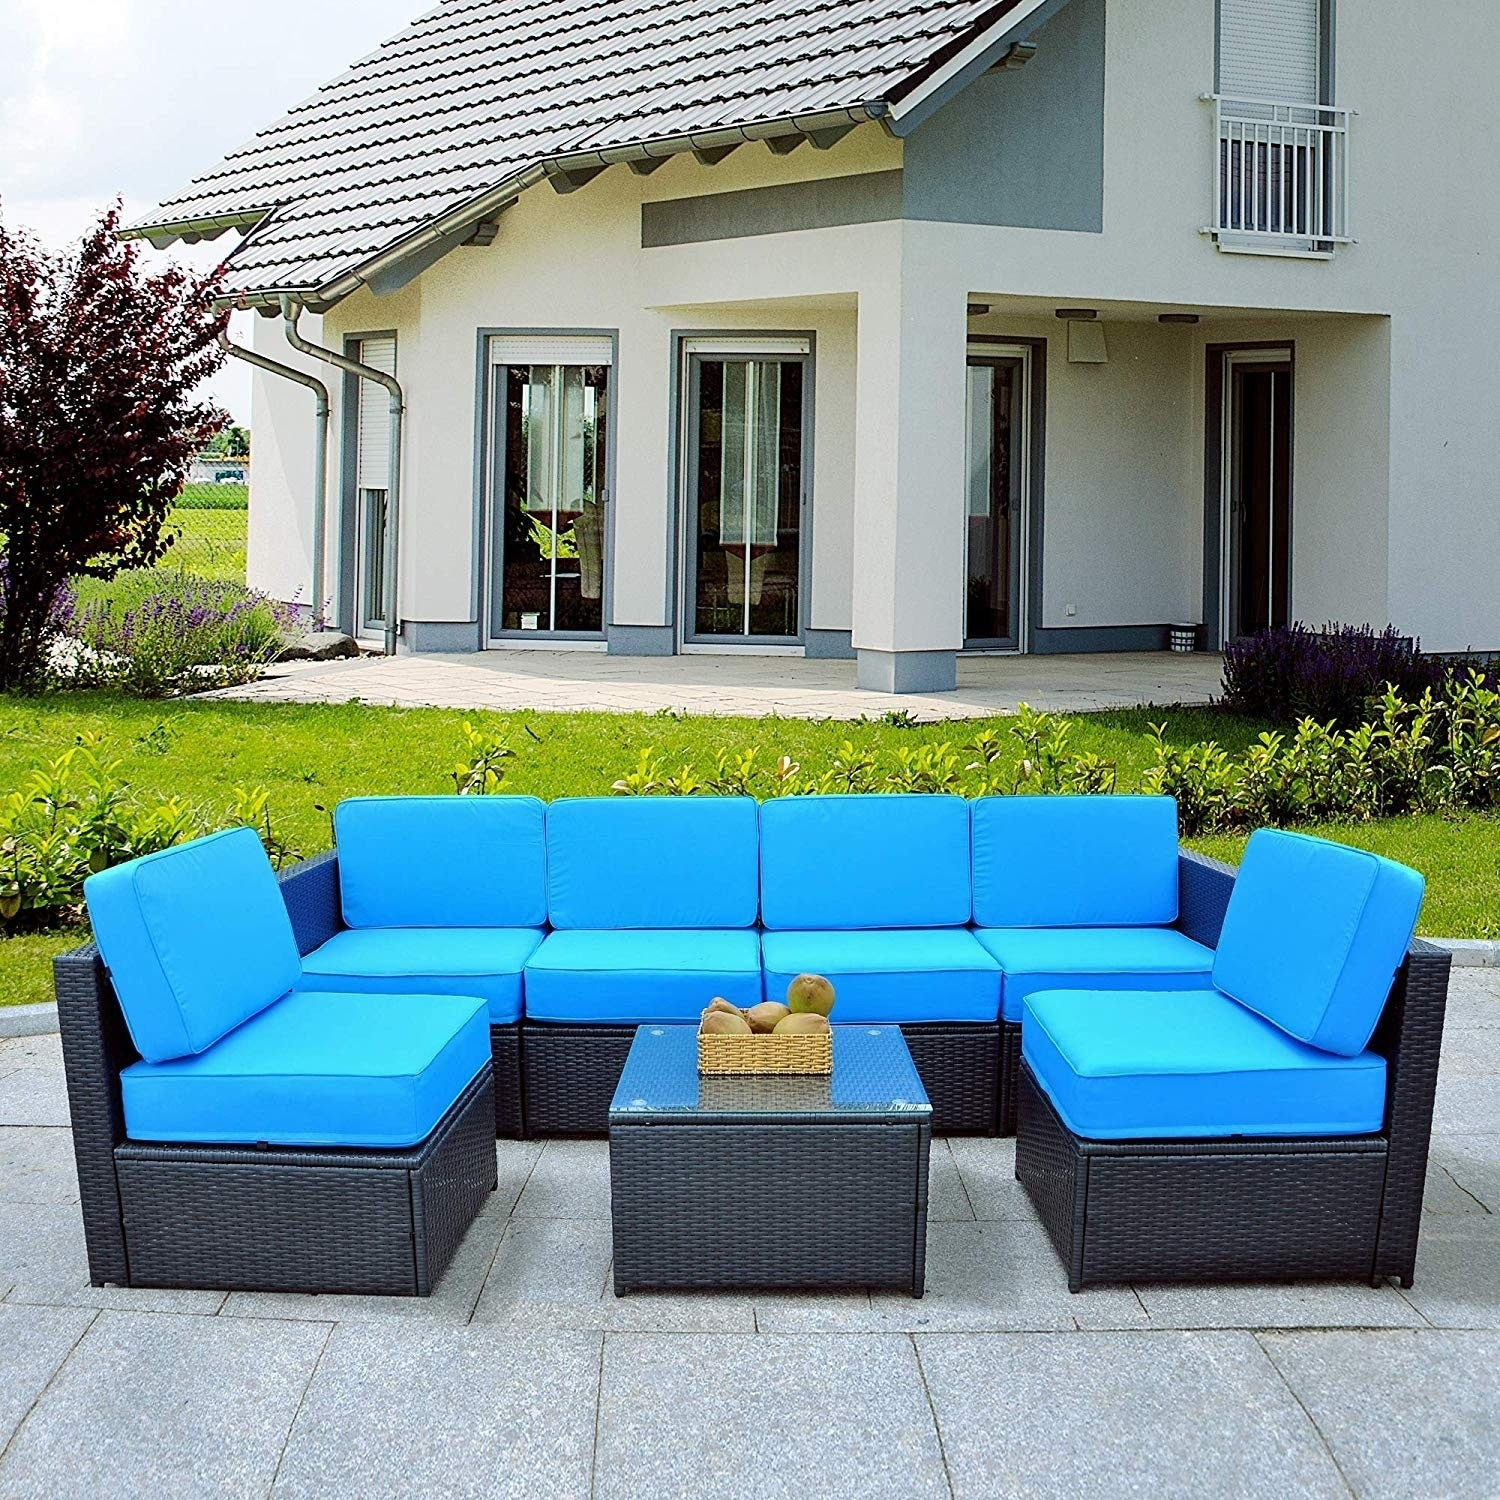 Mcombo Outdoor Patio Black Wicker Furniture Sectional Set All Weather Resin Rattan Chair Conversation Sofas 6085 S1007